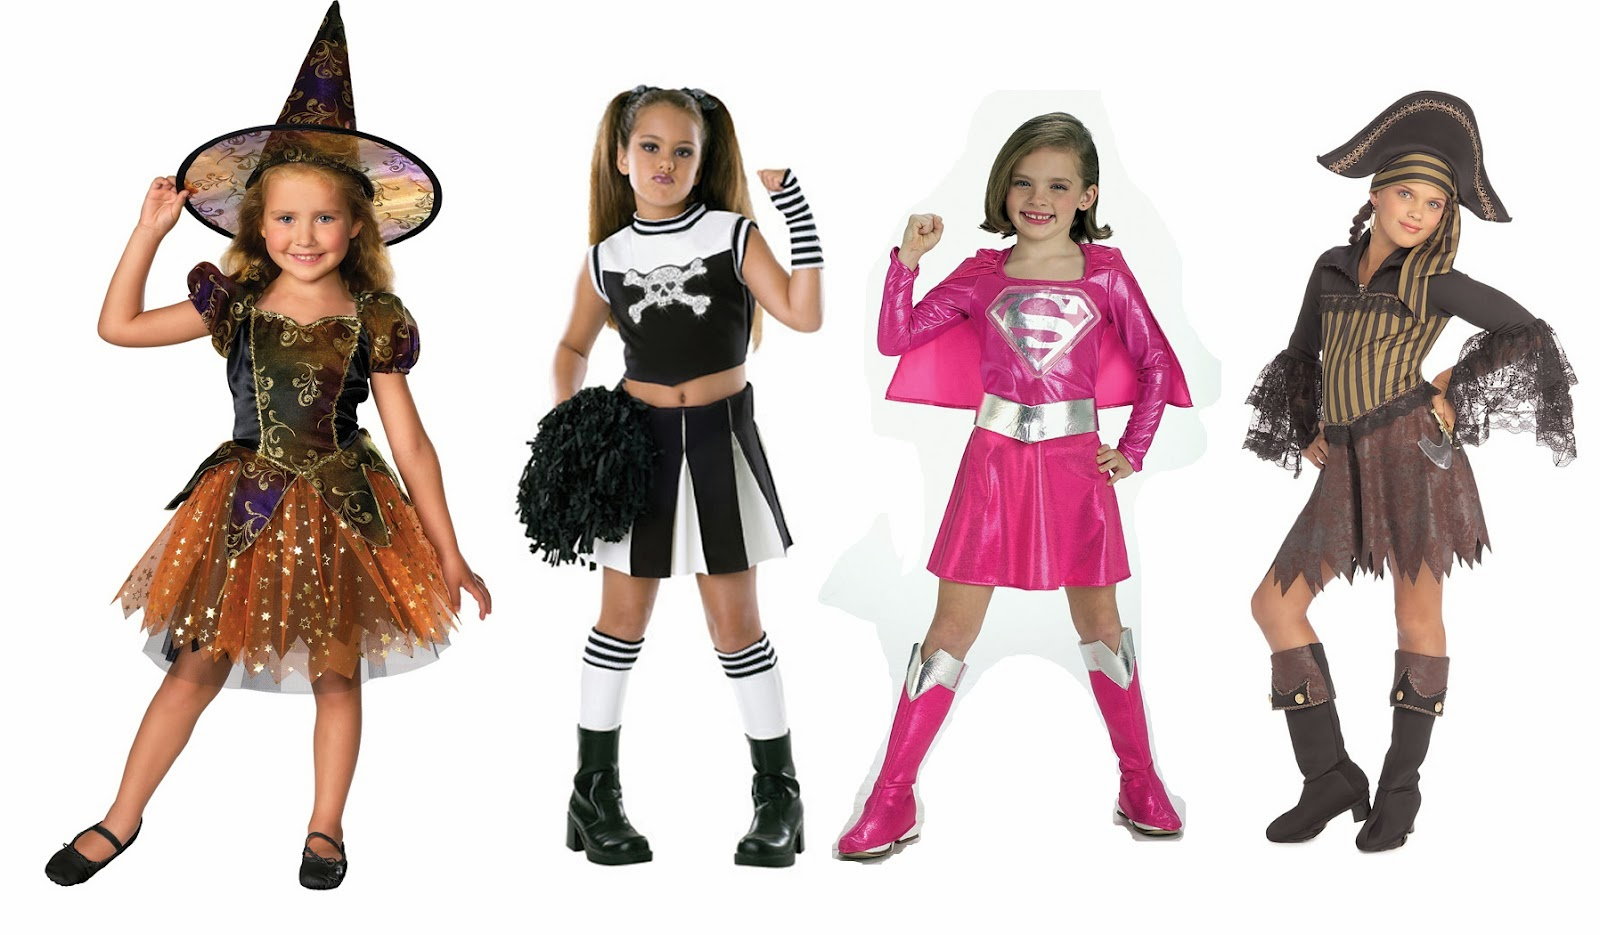 Wallpaper Love Quotes Top Halloween Costumes For Kids